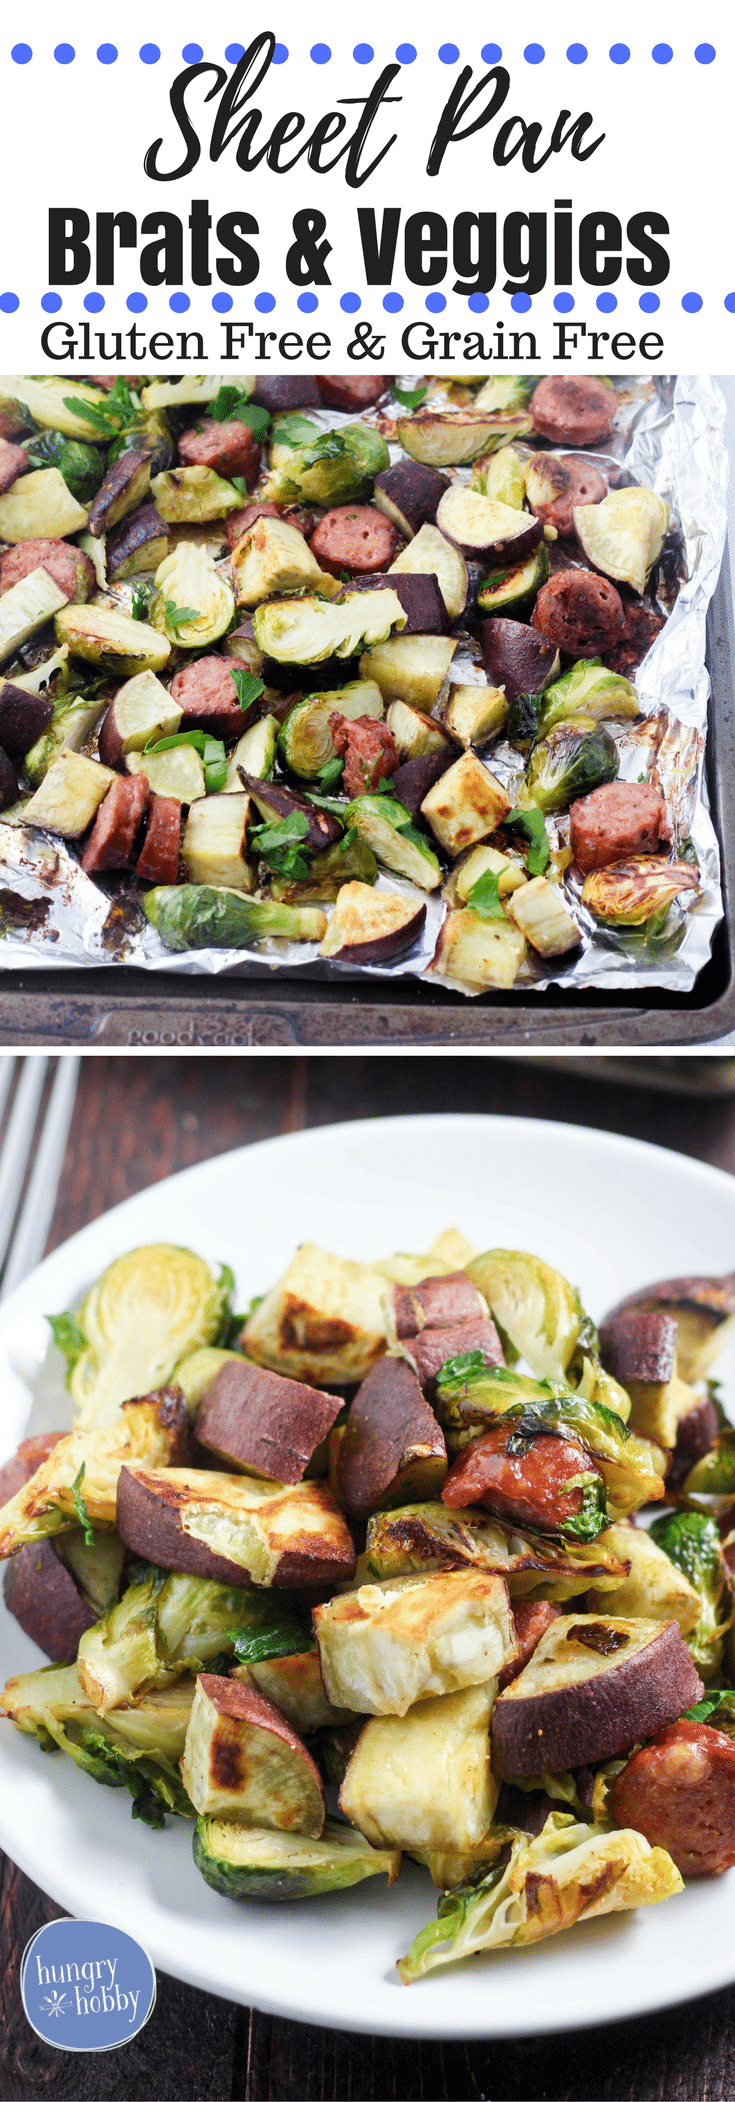 Sheet Pan Bratwurst, Sweet Potato, & Brussel Sprouts is the easiest dinner you will ever make, just chop, spread across a sheet pan, and bake! #glutenfree #sheetpan #hungryhobby